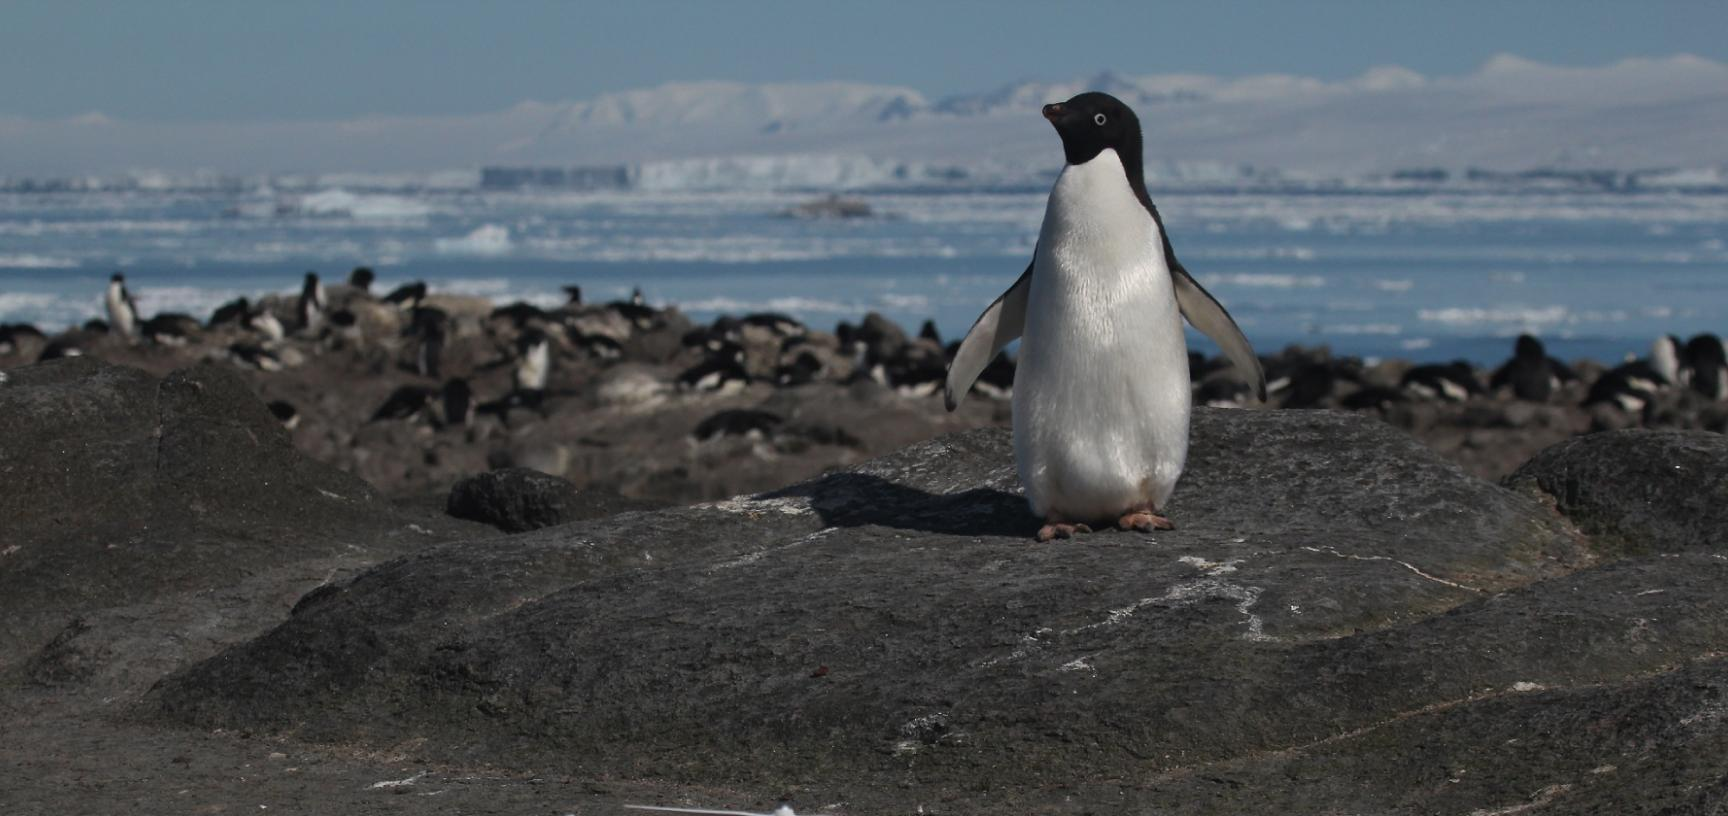 an adelie penguin and quadcopter on brash island danger islands antarctica credit rachael herman stony brook university louisiana state university